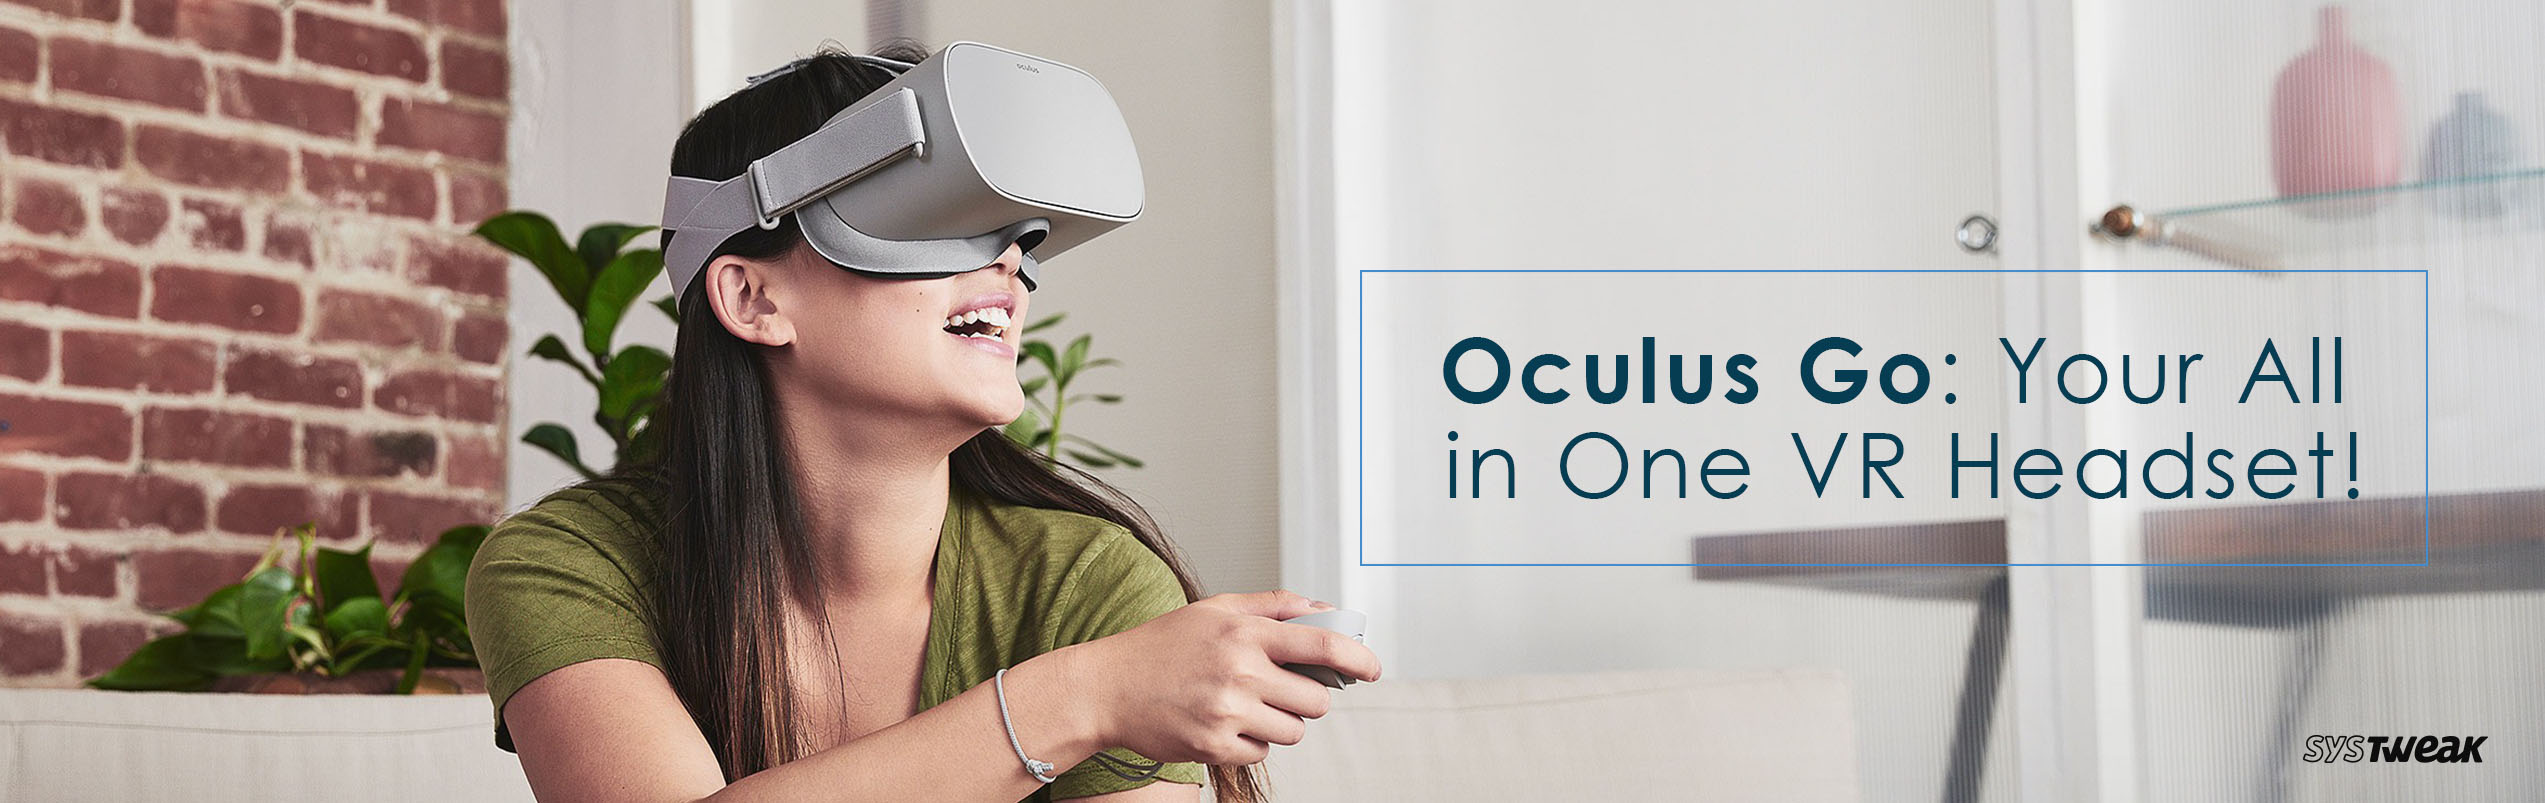 Take Virtual Reality to a Next Level With Oculus Go!